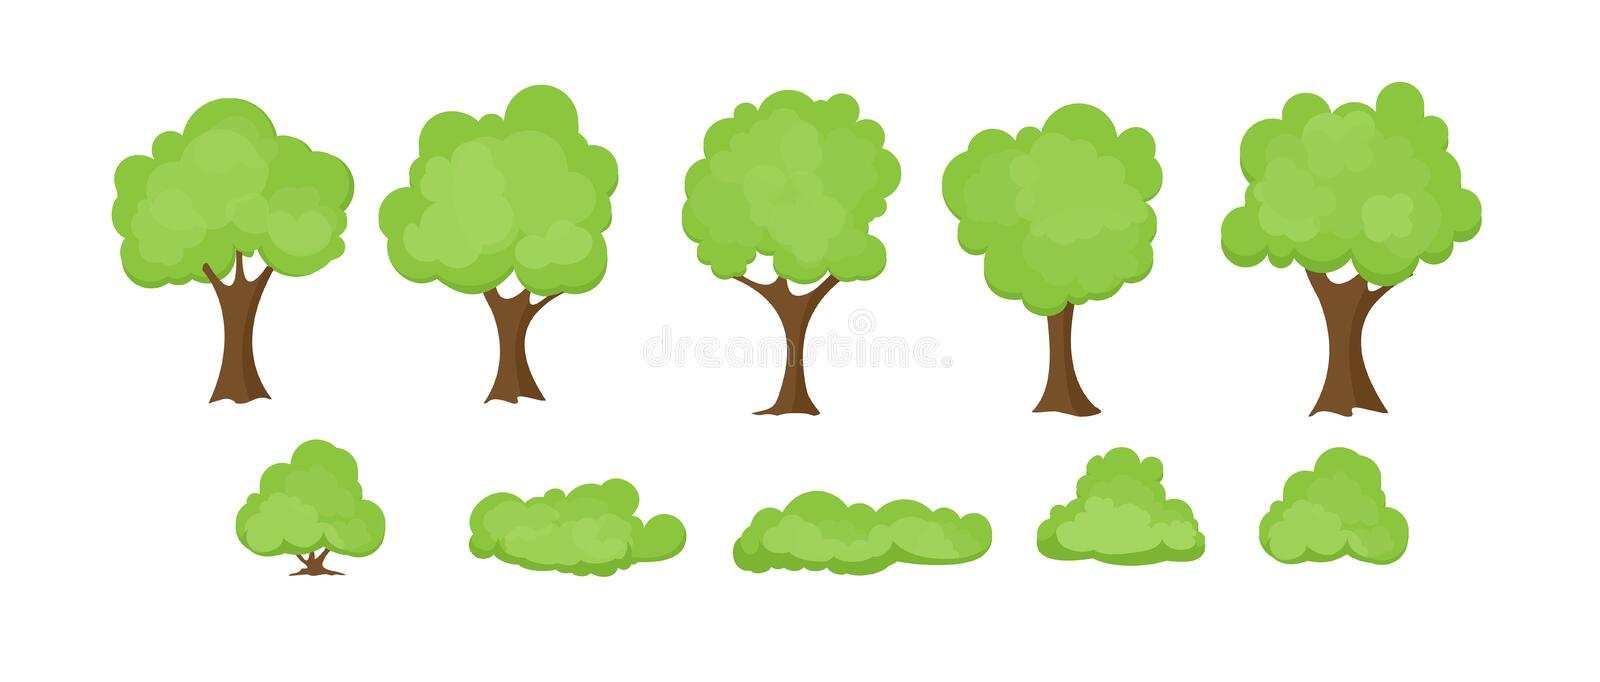 Vector illustration set of abstract stylized trees on white background. Trees and bushes collection in flat cartoon vector illustration